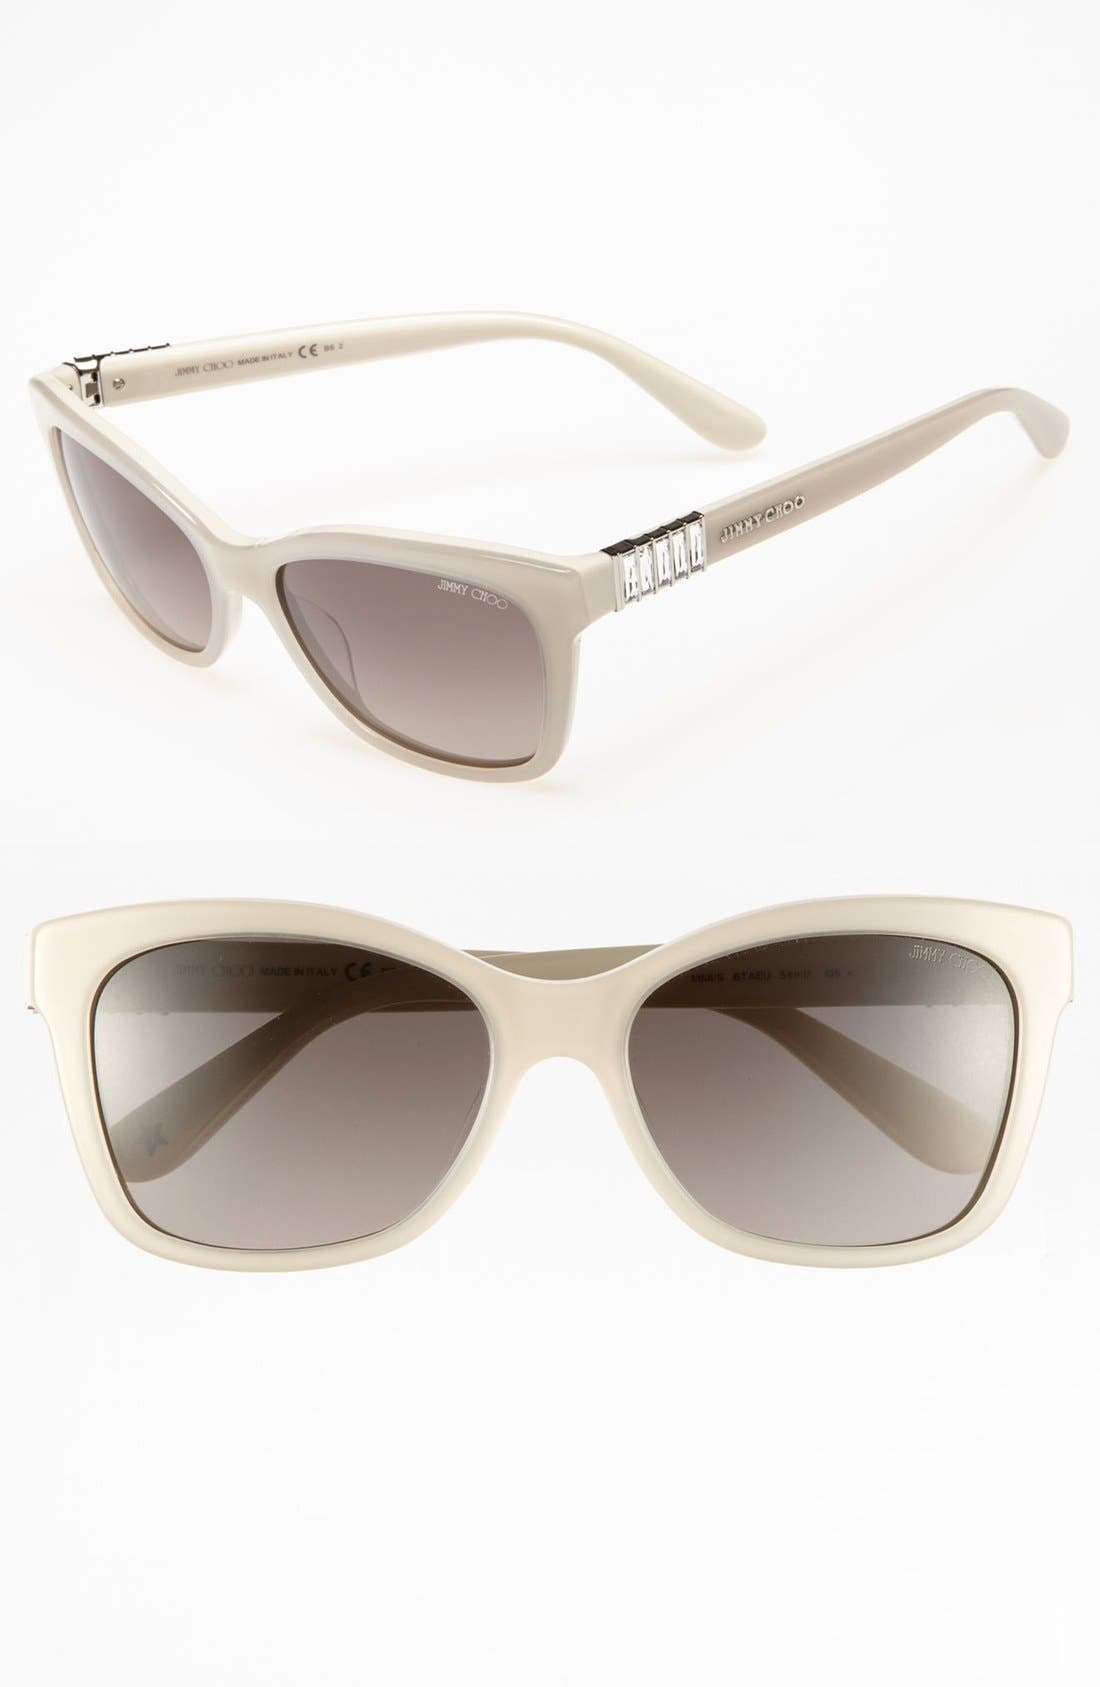 Main Image - Jimmy Choo 'Mimi' 54mm Sunglasses